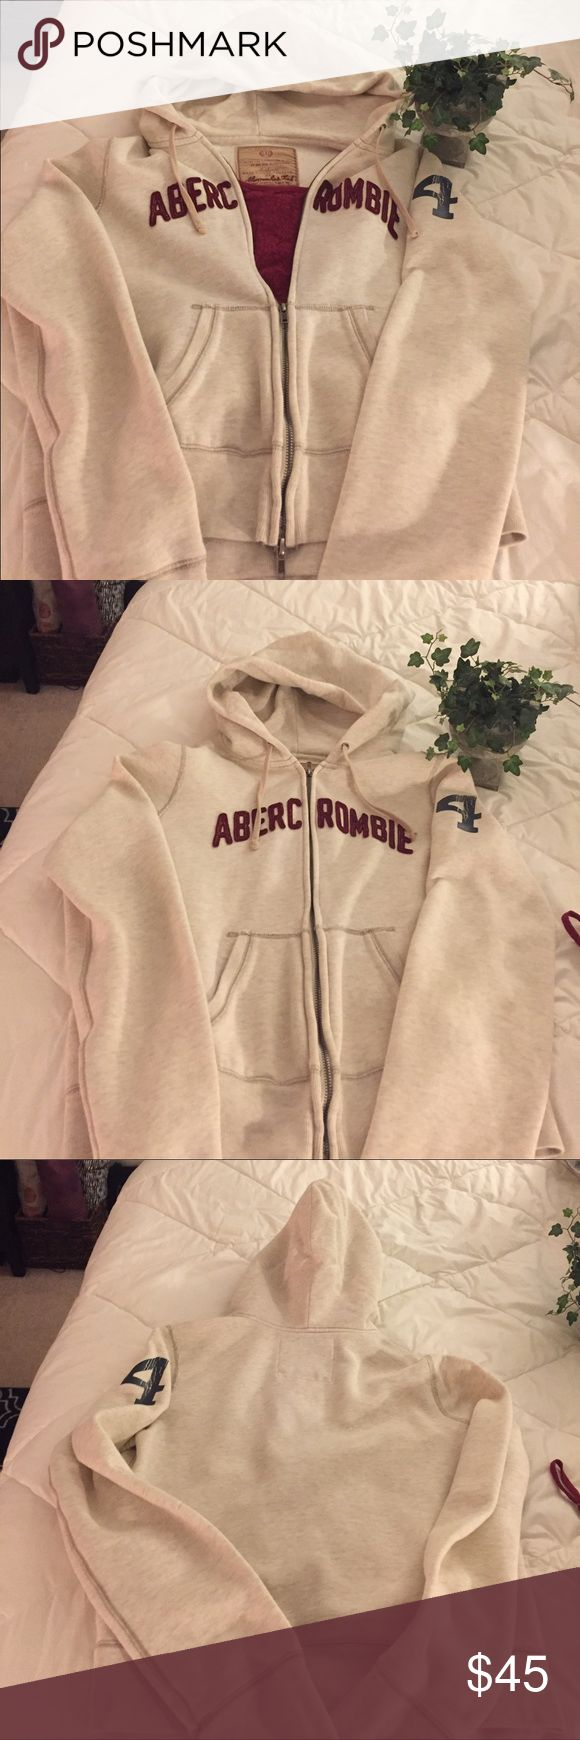 Abercrombie Hooded Zip Up Jacket Fun and comfy zip up hooded sweat jacket. Great condition, like new! No holes, stains, rips, or piling. Heavier material very soft. Fits medium or large very roomy. Cream and Burgundy in color and a blue number on left arm. Fun to wear with different tanks or shirts or by itself whatever you desire! the weather it's a great go to hoodie!! Abercrombie & Fitch Jackets & Coats